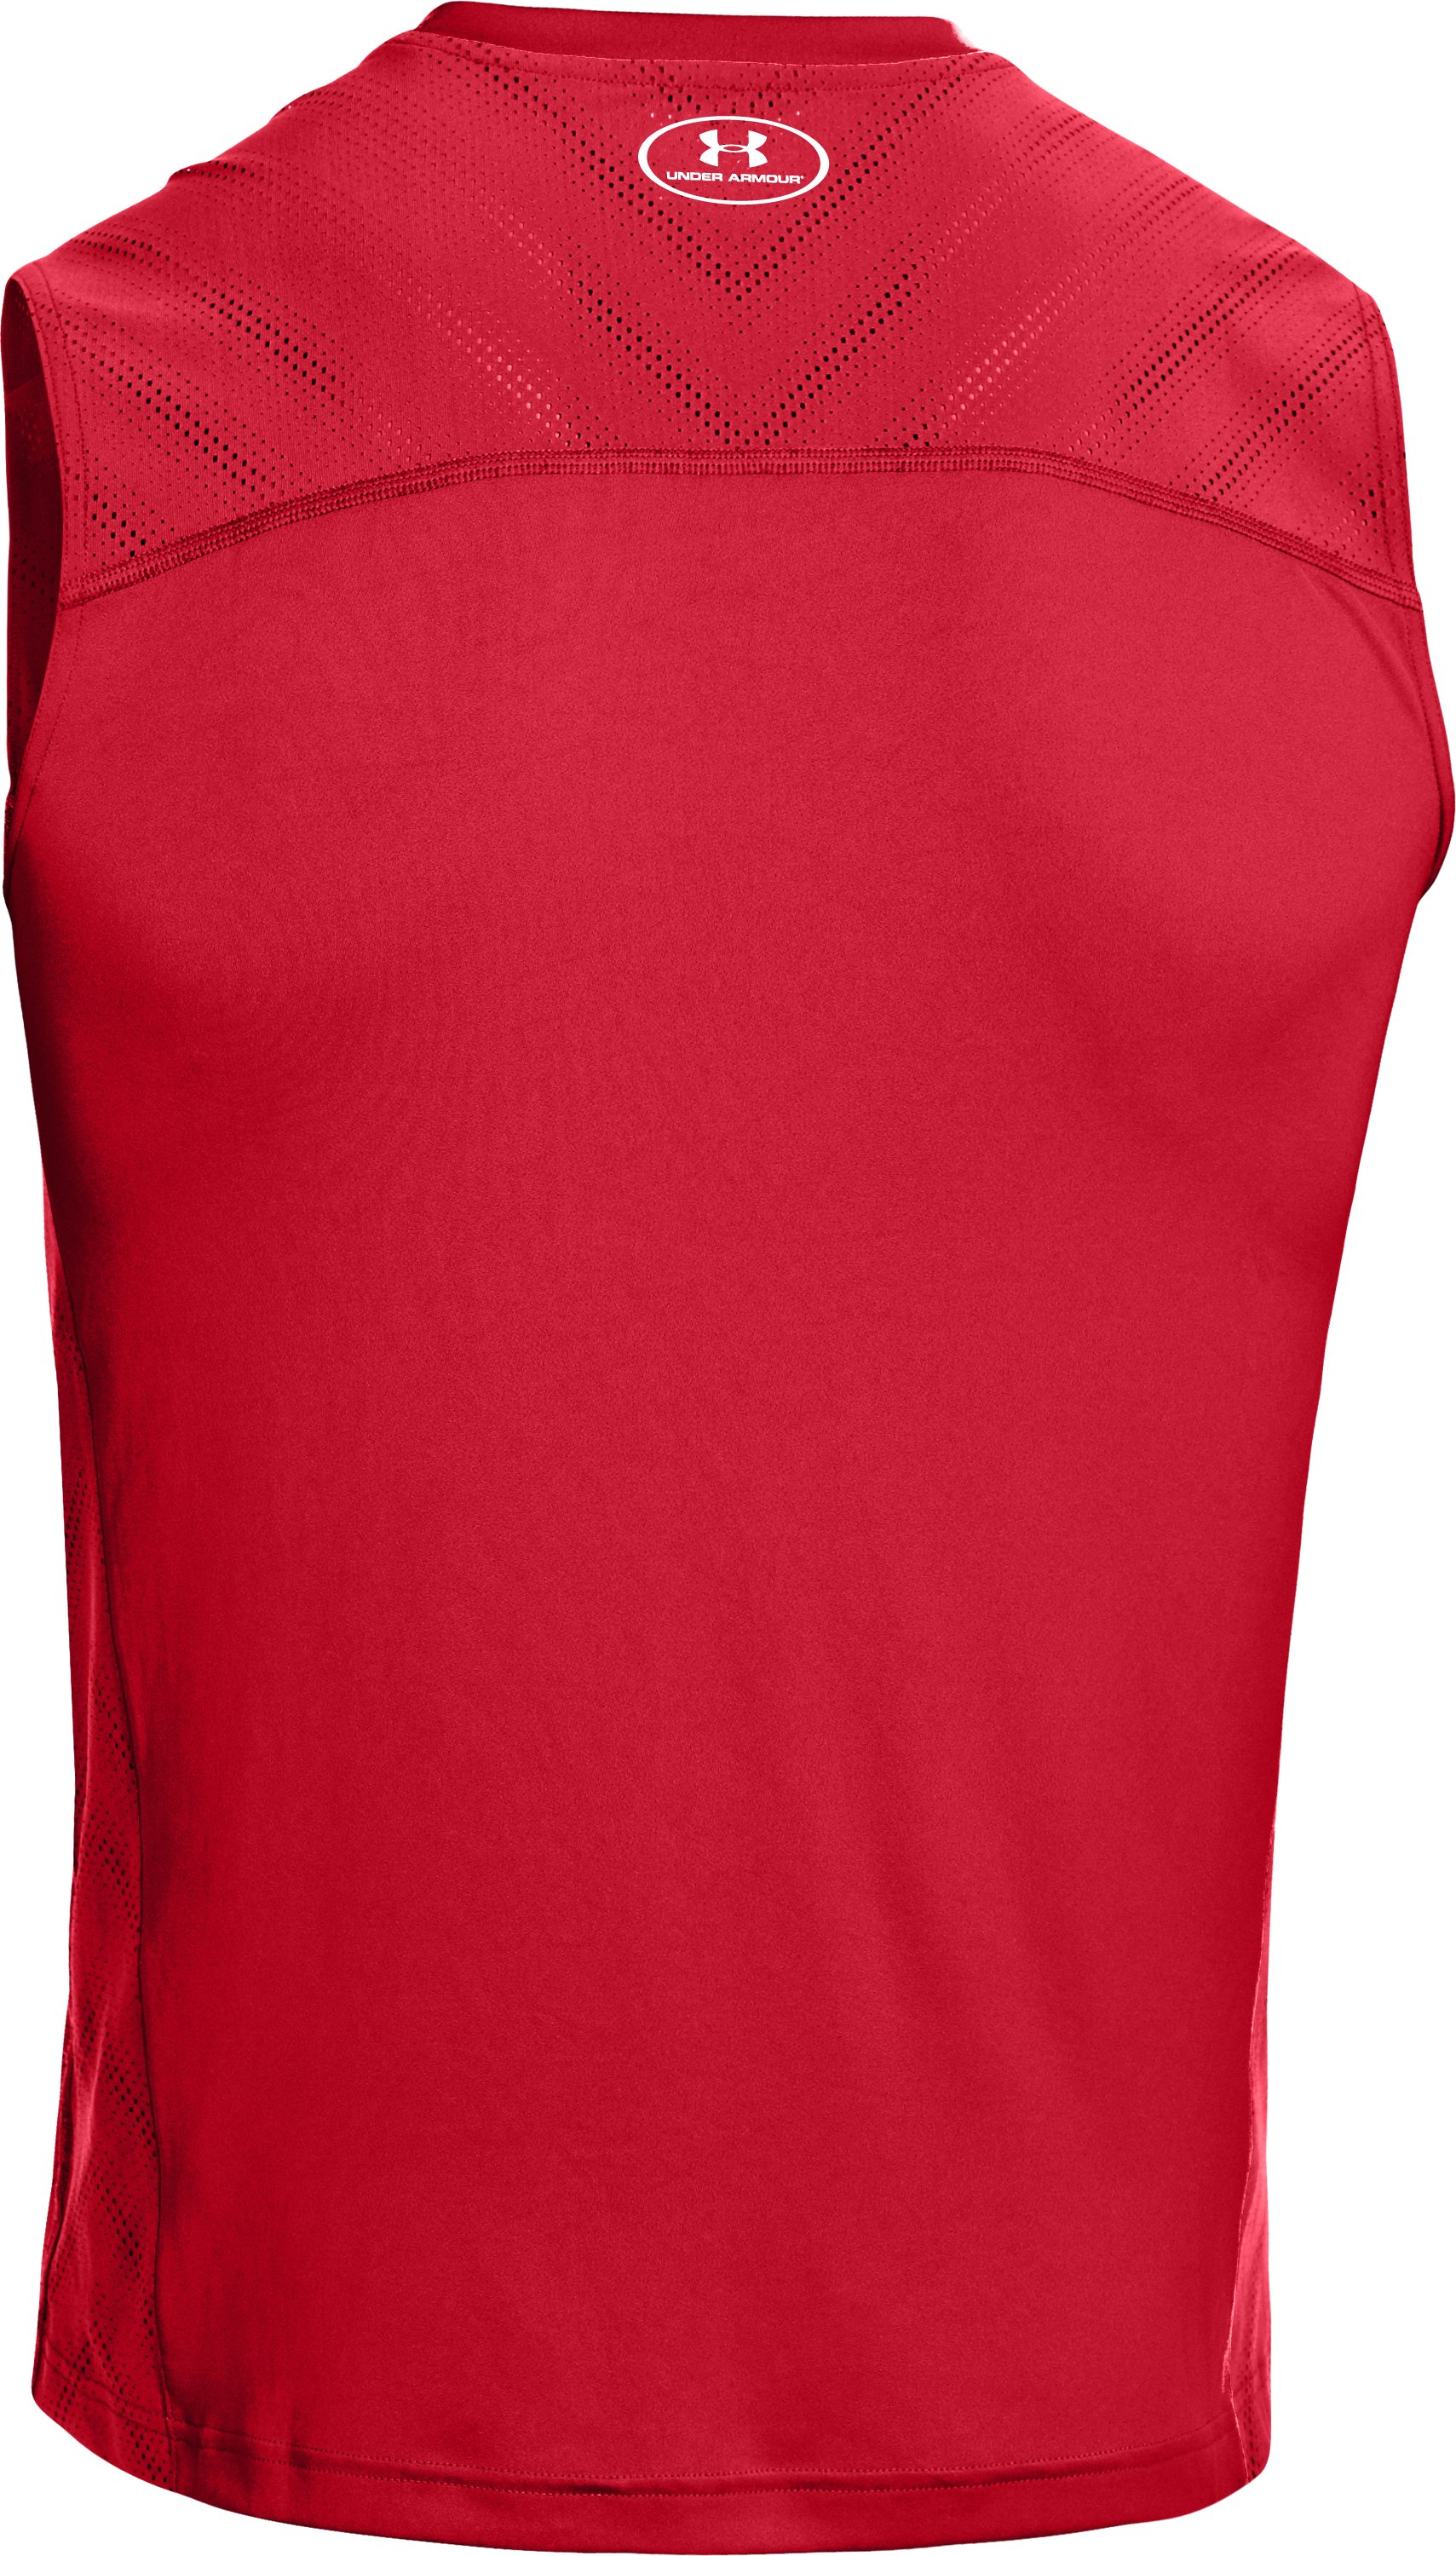 Men's HeatGear® ArmourVent™ Sleeveless Training T-Shirt, Red, undefined